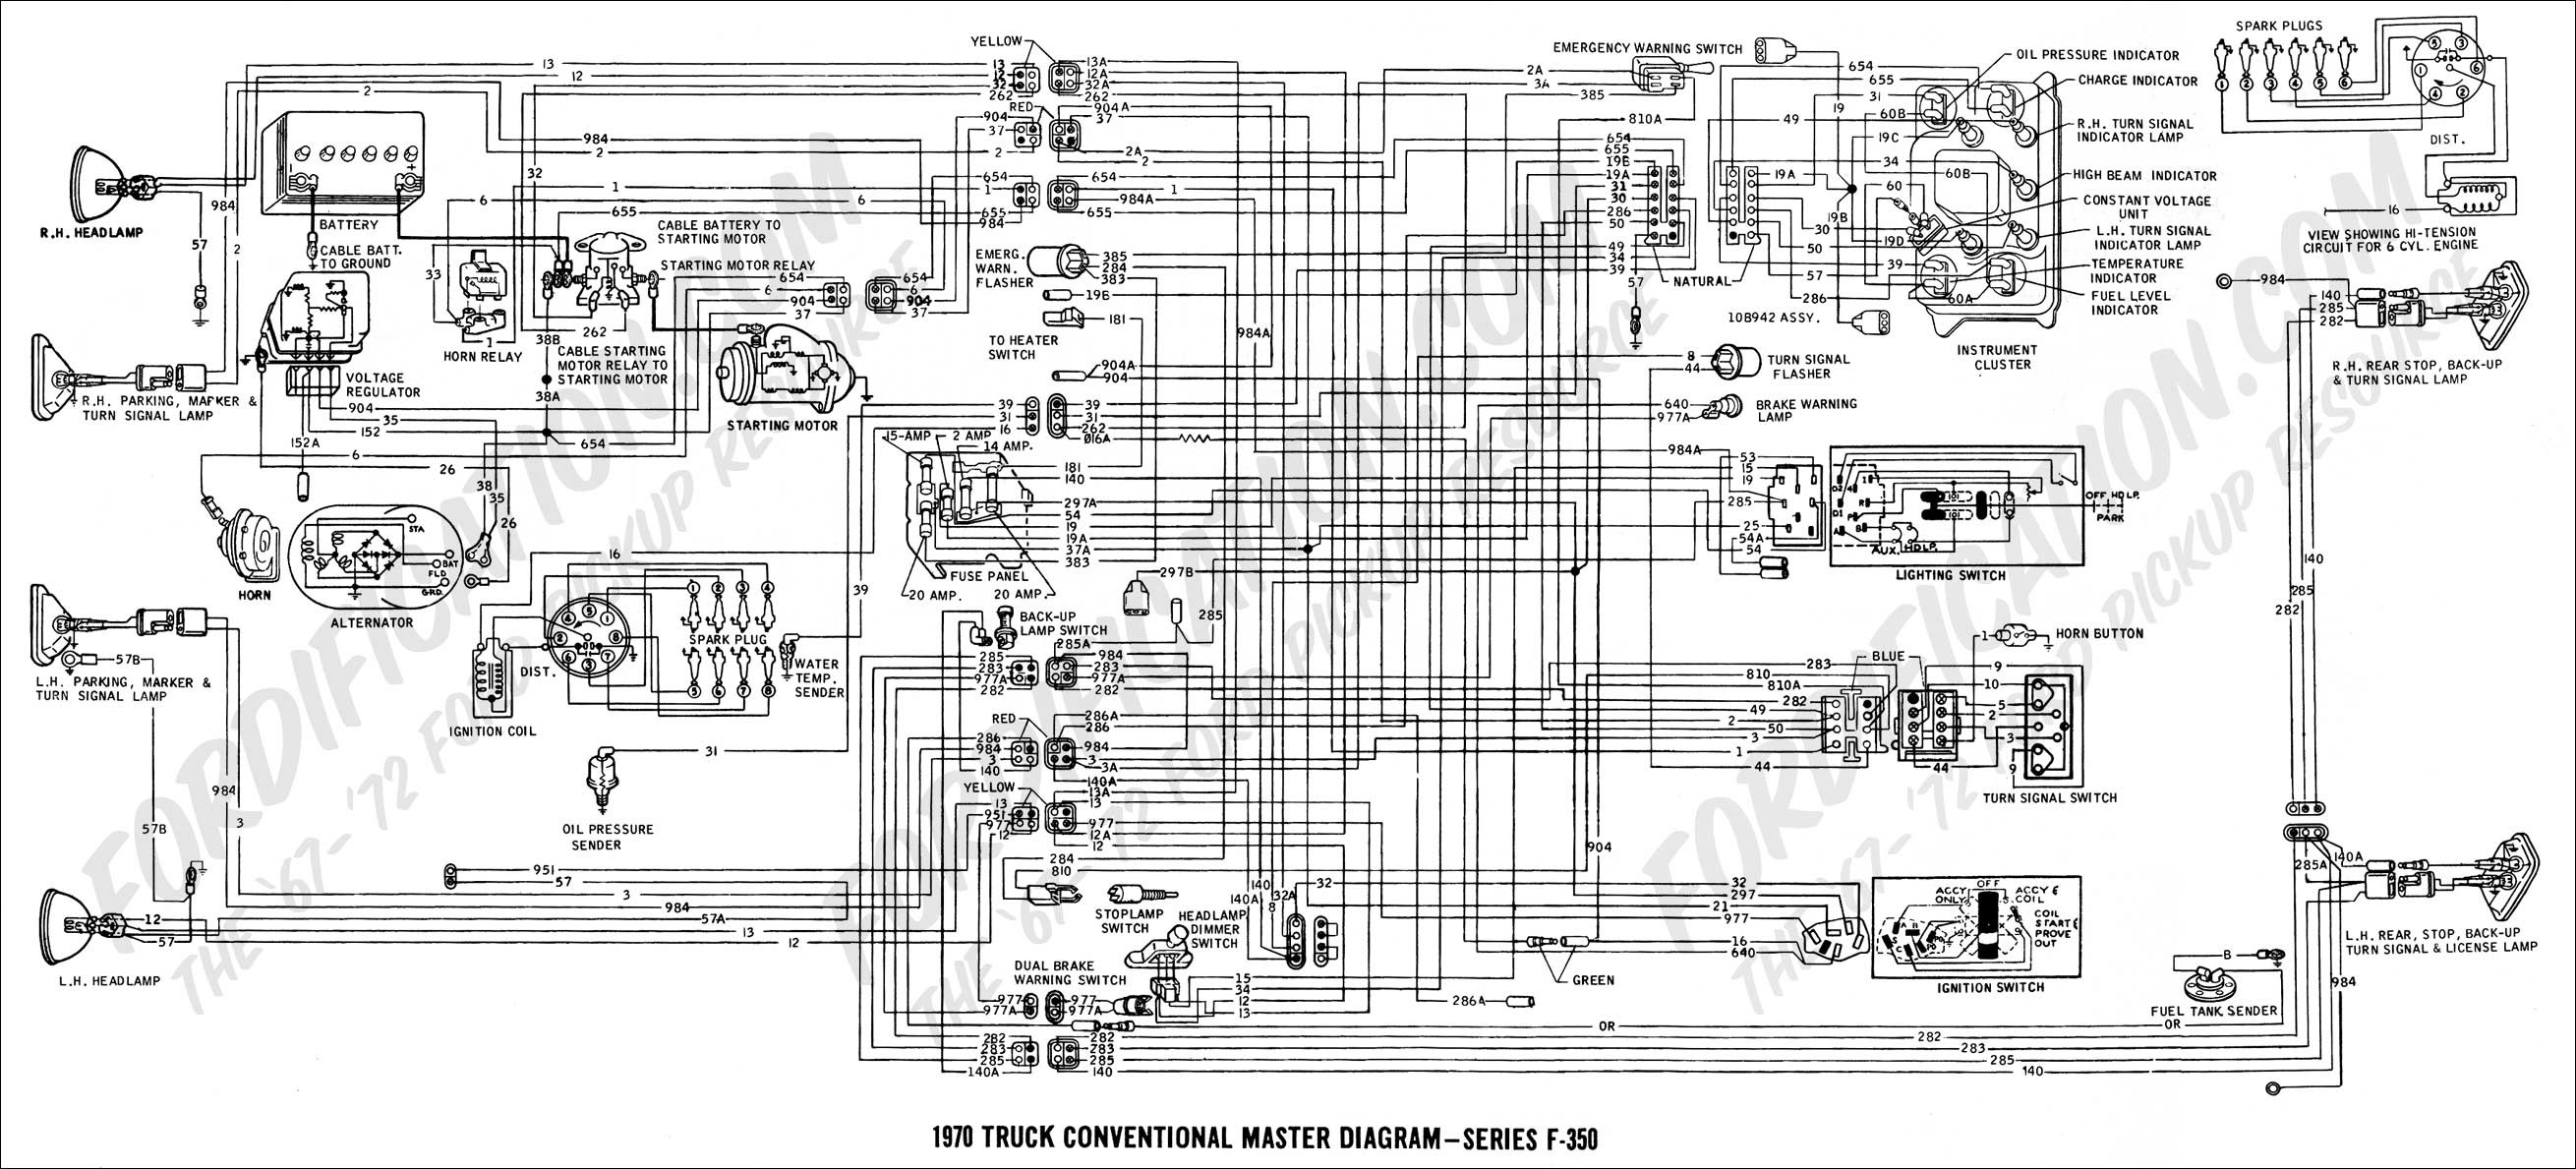 1983 toyota Pickup Wiring Diagram Diagram as Well ford F 350 Wiring Diagram  In Addition ford Headlight